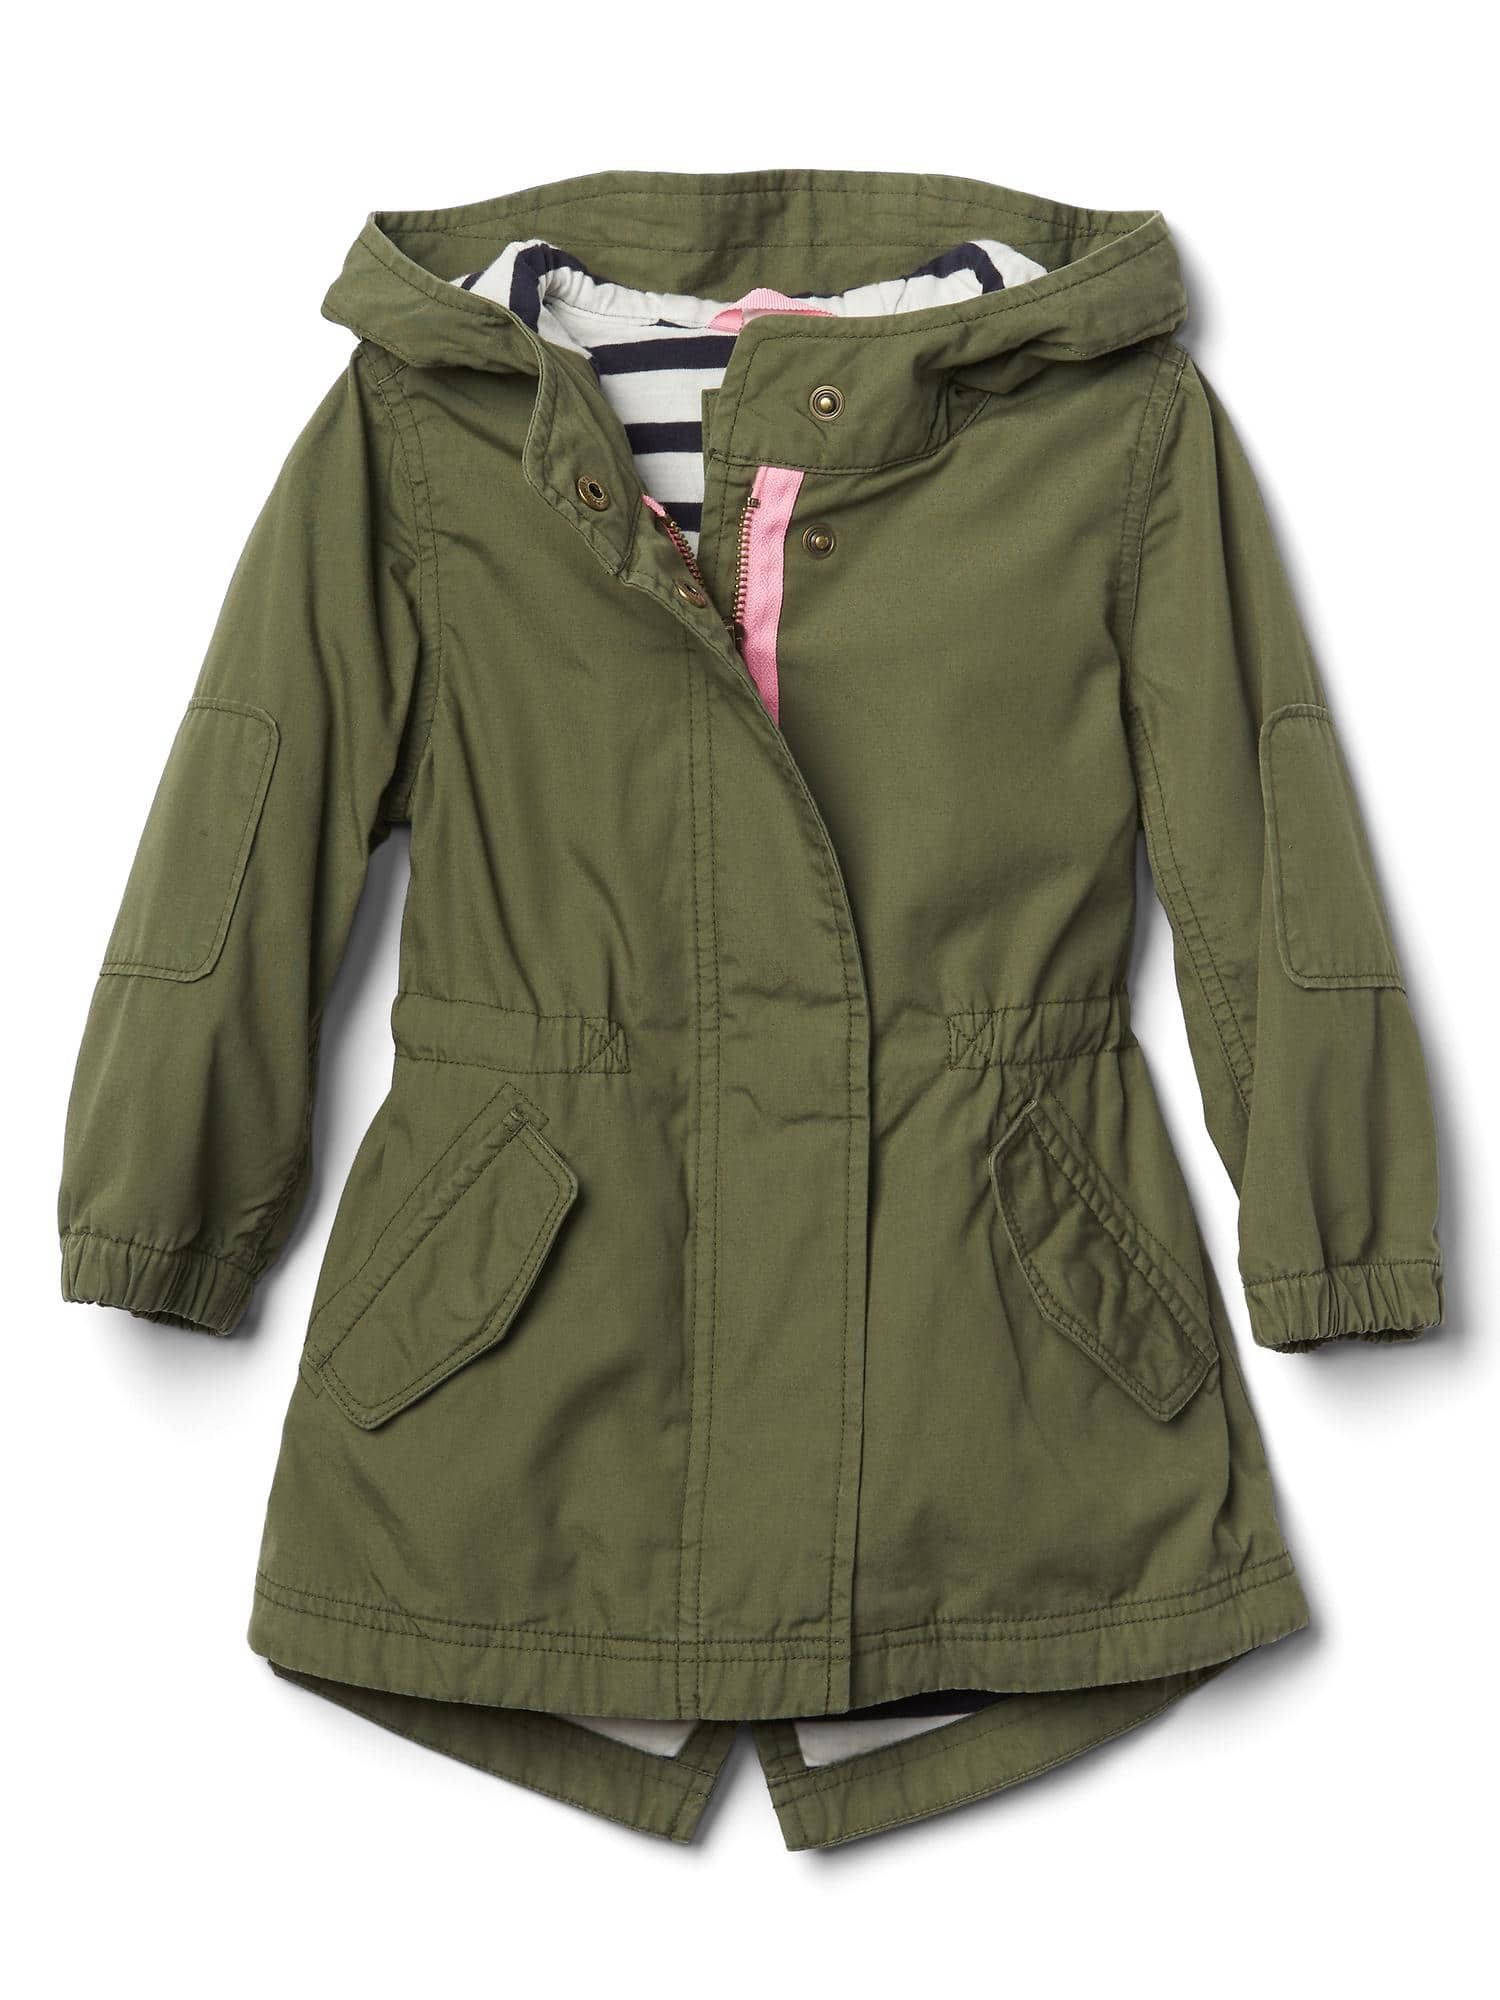 OshKosh BGosh girls Lightweight Anorak Jacket With Jersey Lining